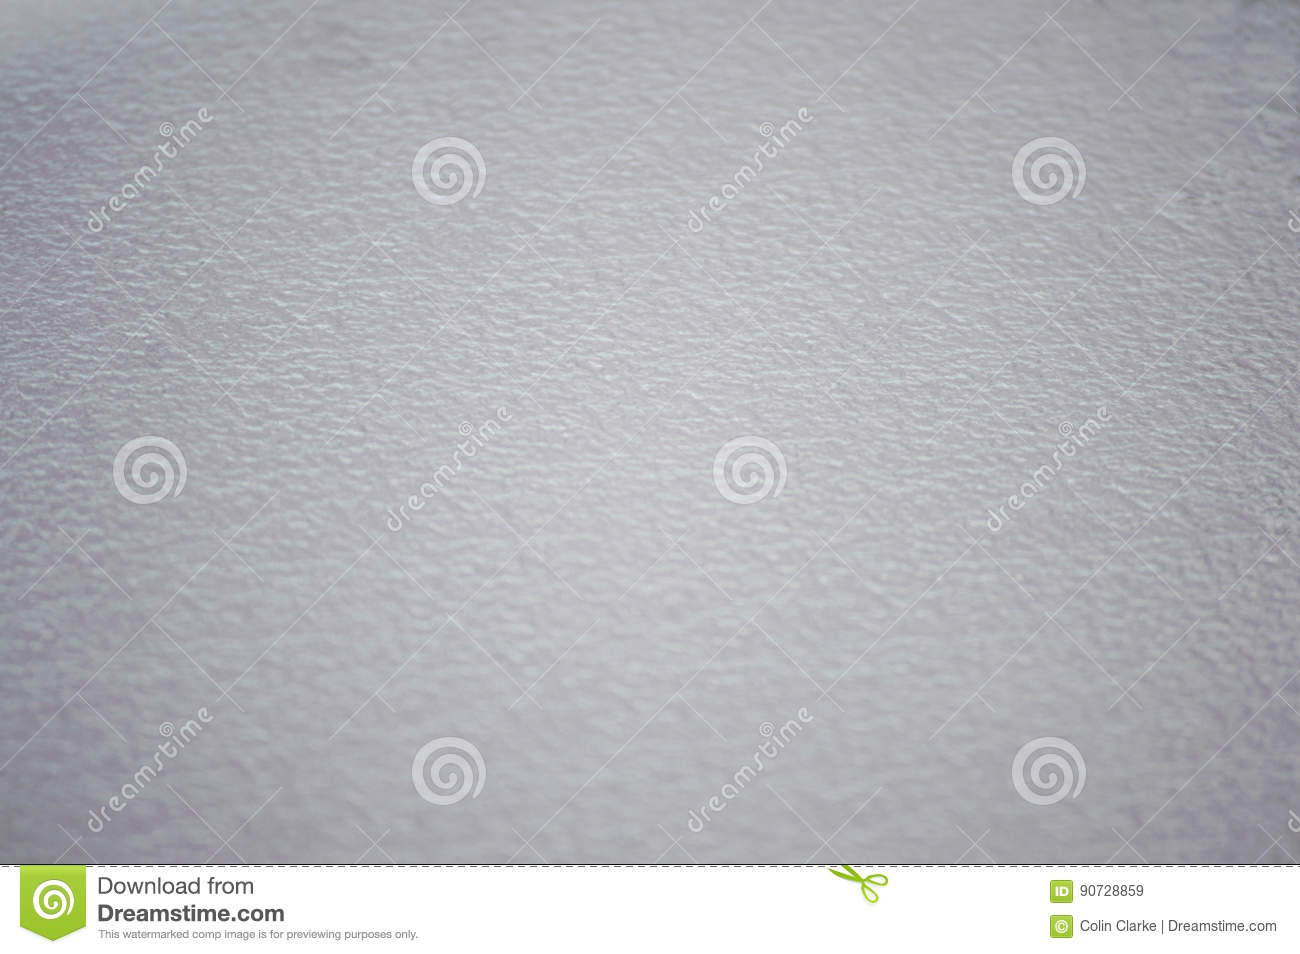 Download Background Reflective Glass Stock Image   Image Of Tabletop, Lens:  90728859